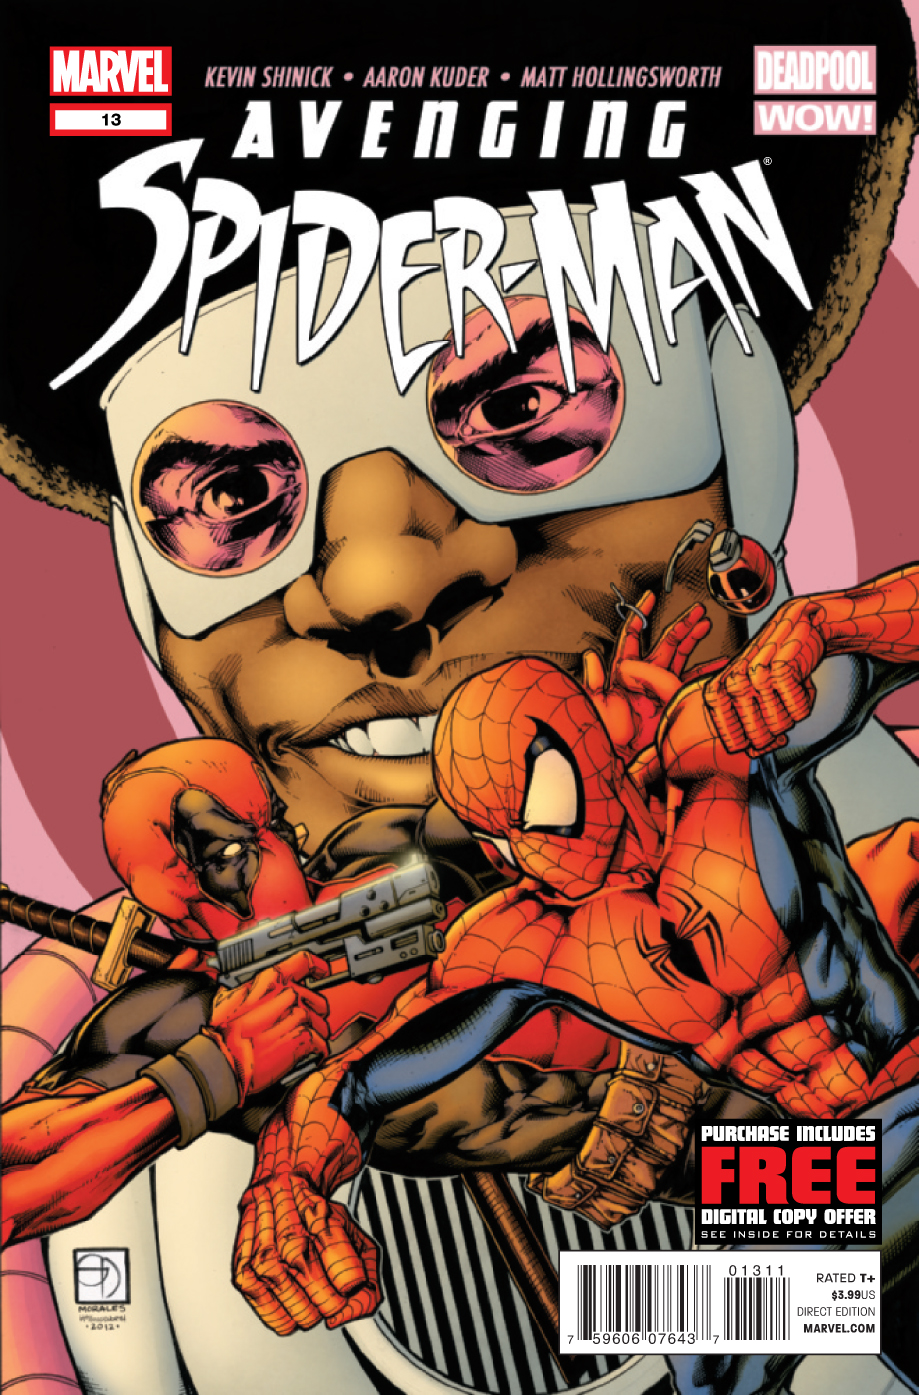 Avenging Spider Man 13 C Kevin Shinick Interview Part 2: AVENGING SPIDER MAN and MARVEL NOW!